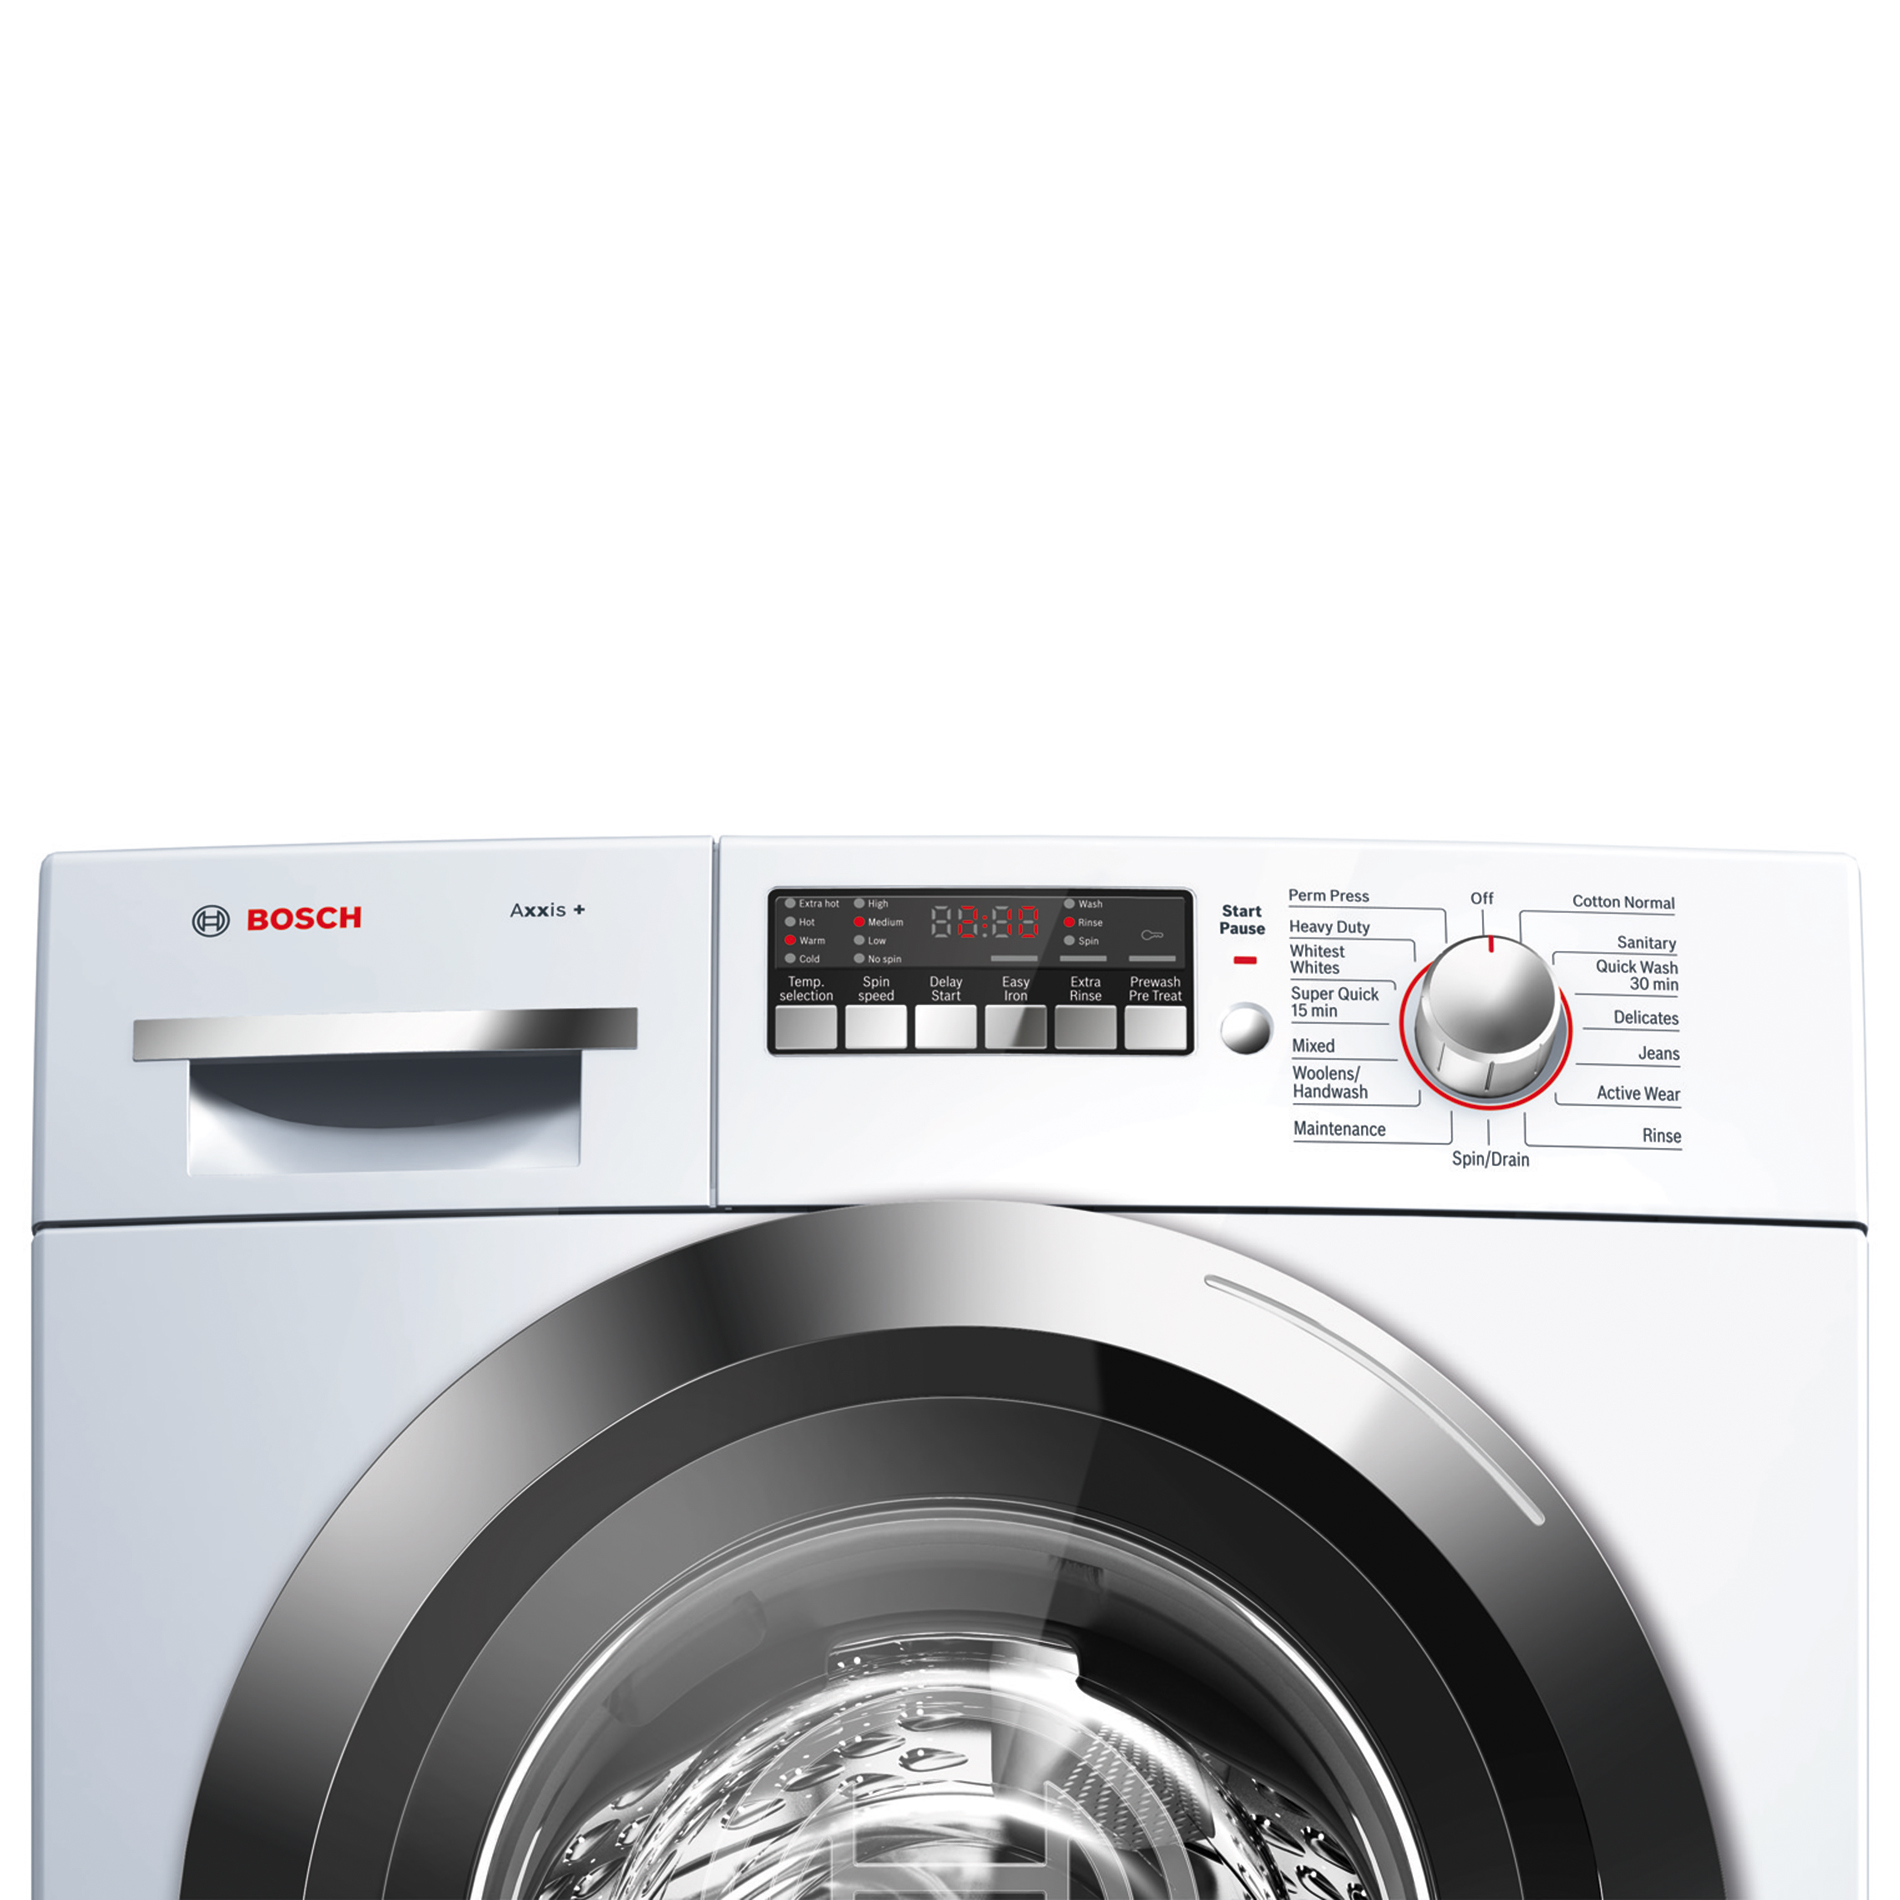 Bosch Axxis Plus 2.2 cu. ft. Compact Washer - White